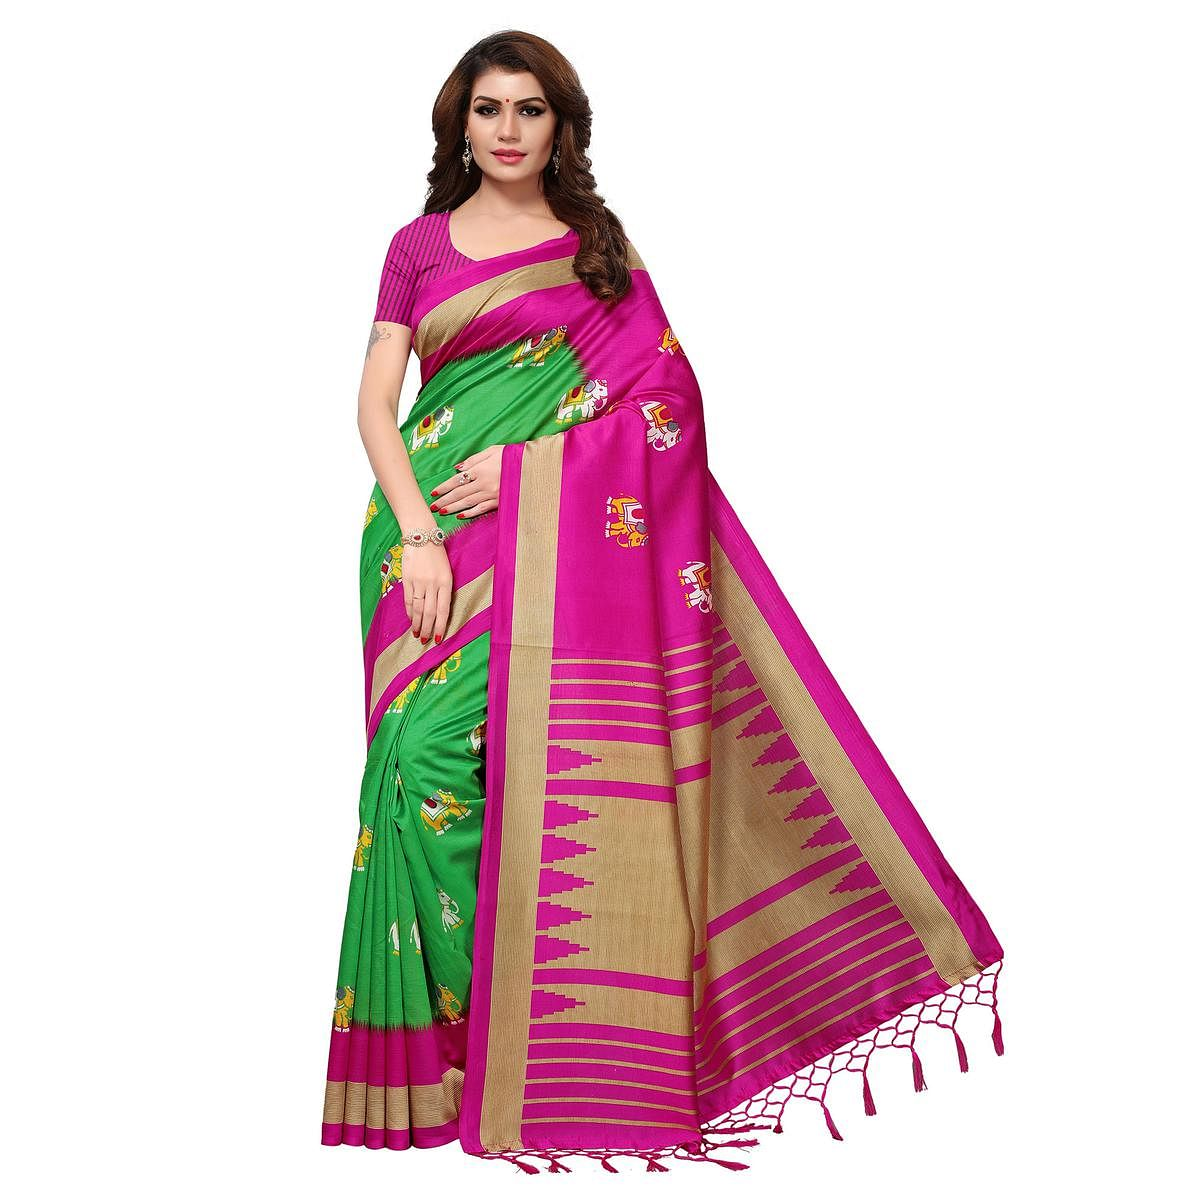 Blooming Green-Pink Colored Festive Wear Printed Mysore Art Silk Saree